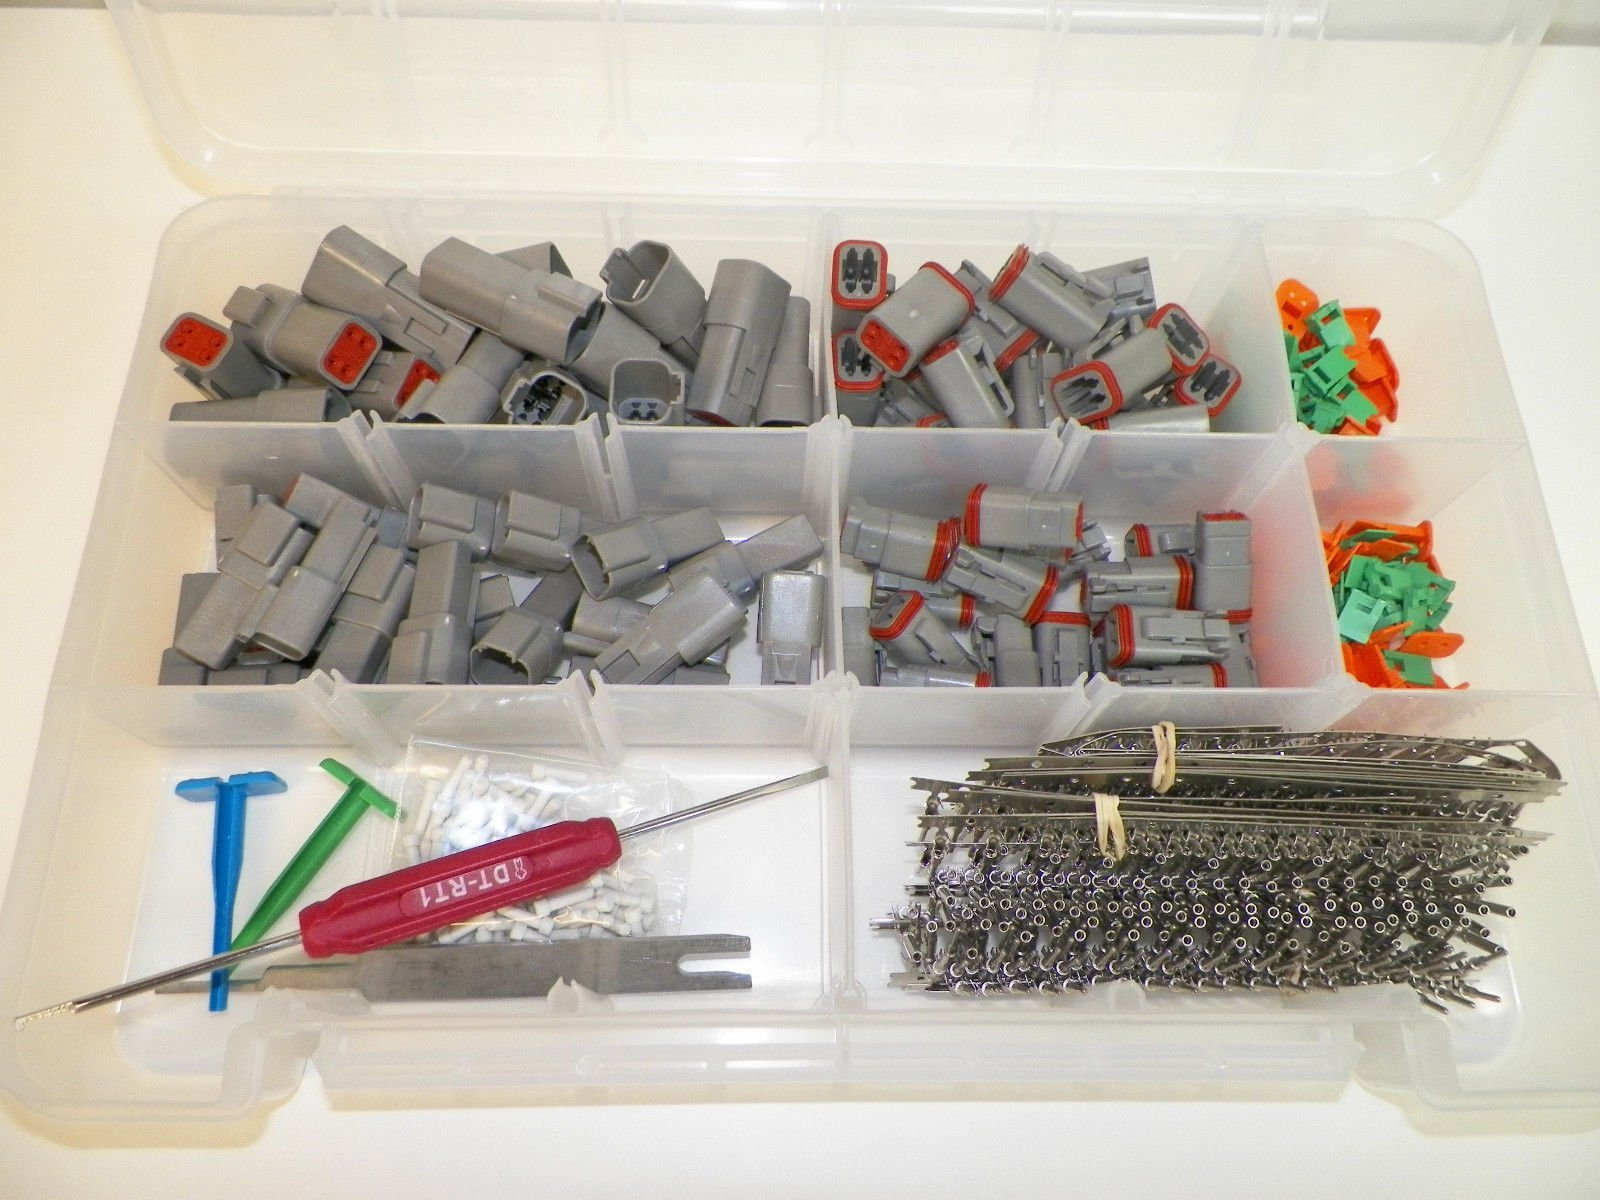 DEUTSCH DT CONNECTOR KIT GRAY OEM 662 Piece Kit STAMPED TERMINALS + REMOVAL TOOLS, MALE & FEMALE. Order by 3PM EST shipped that day